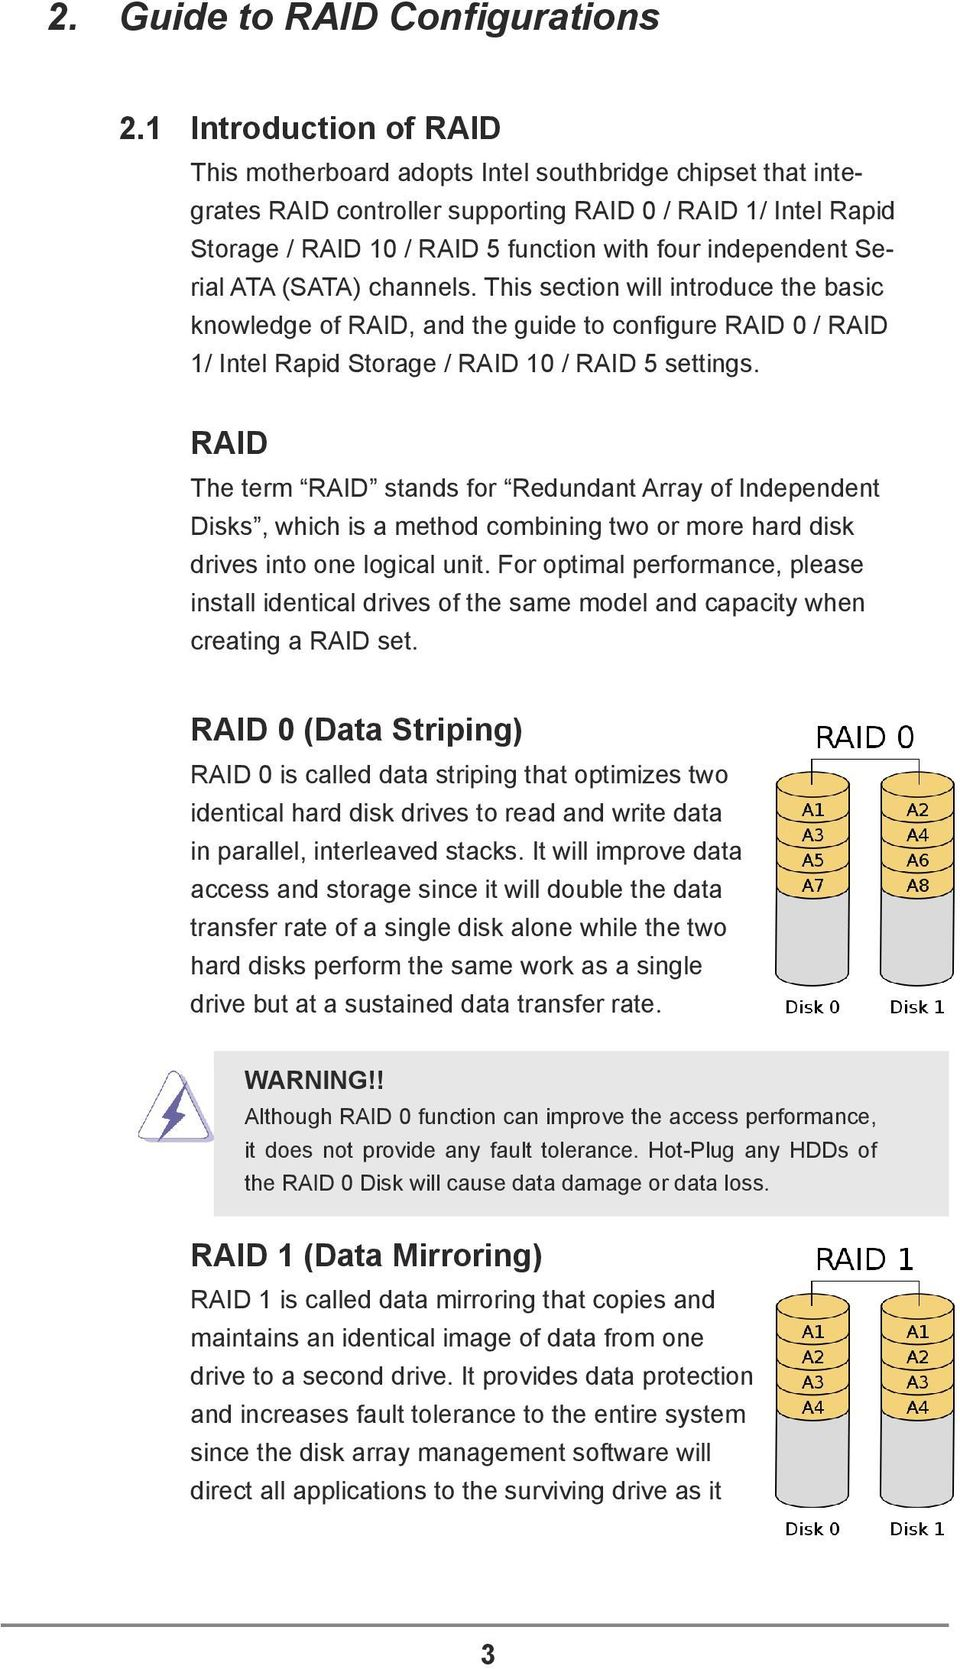 independent Serial ATA (SATA) channels. This section will introduce the basic knowledge of RAID, and the guide to configure RAID 0 / RAID 1/ Intel Rapid Storage / RAID 10 / RAID 5 settings.